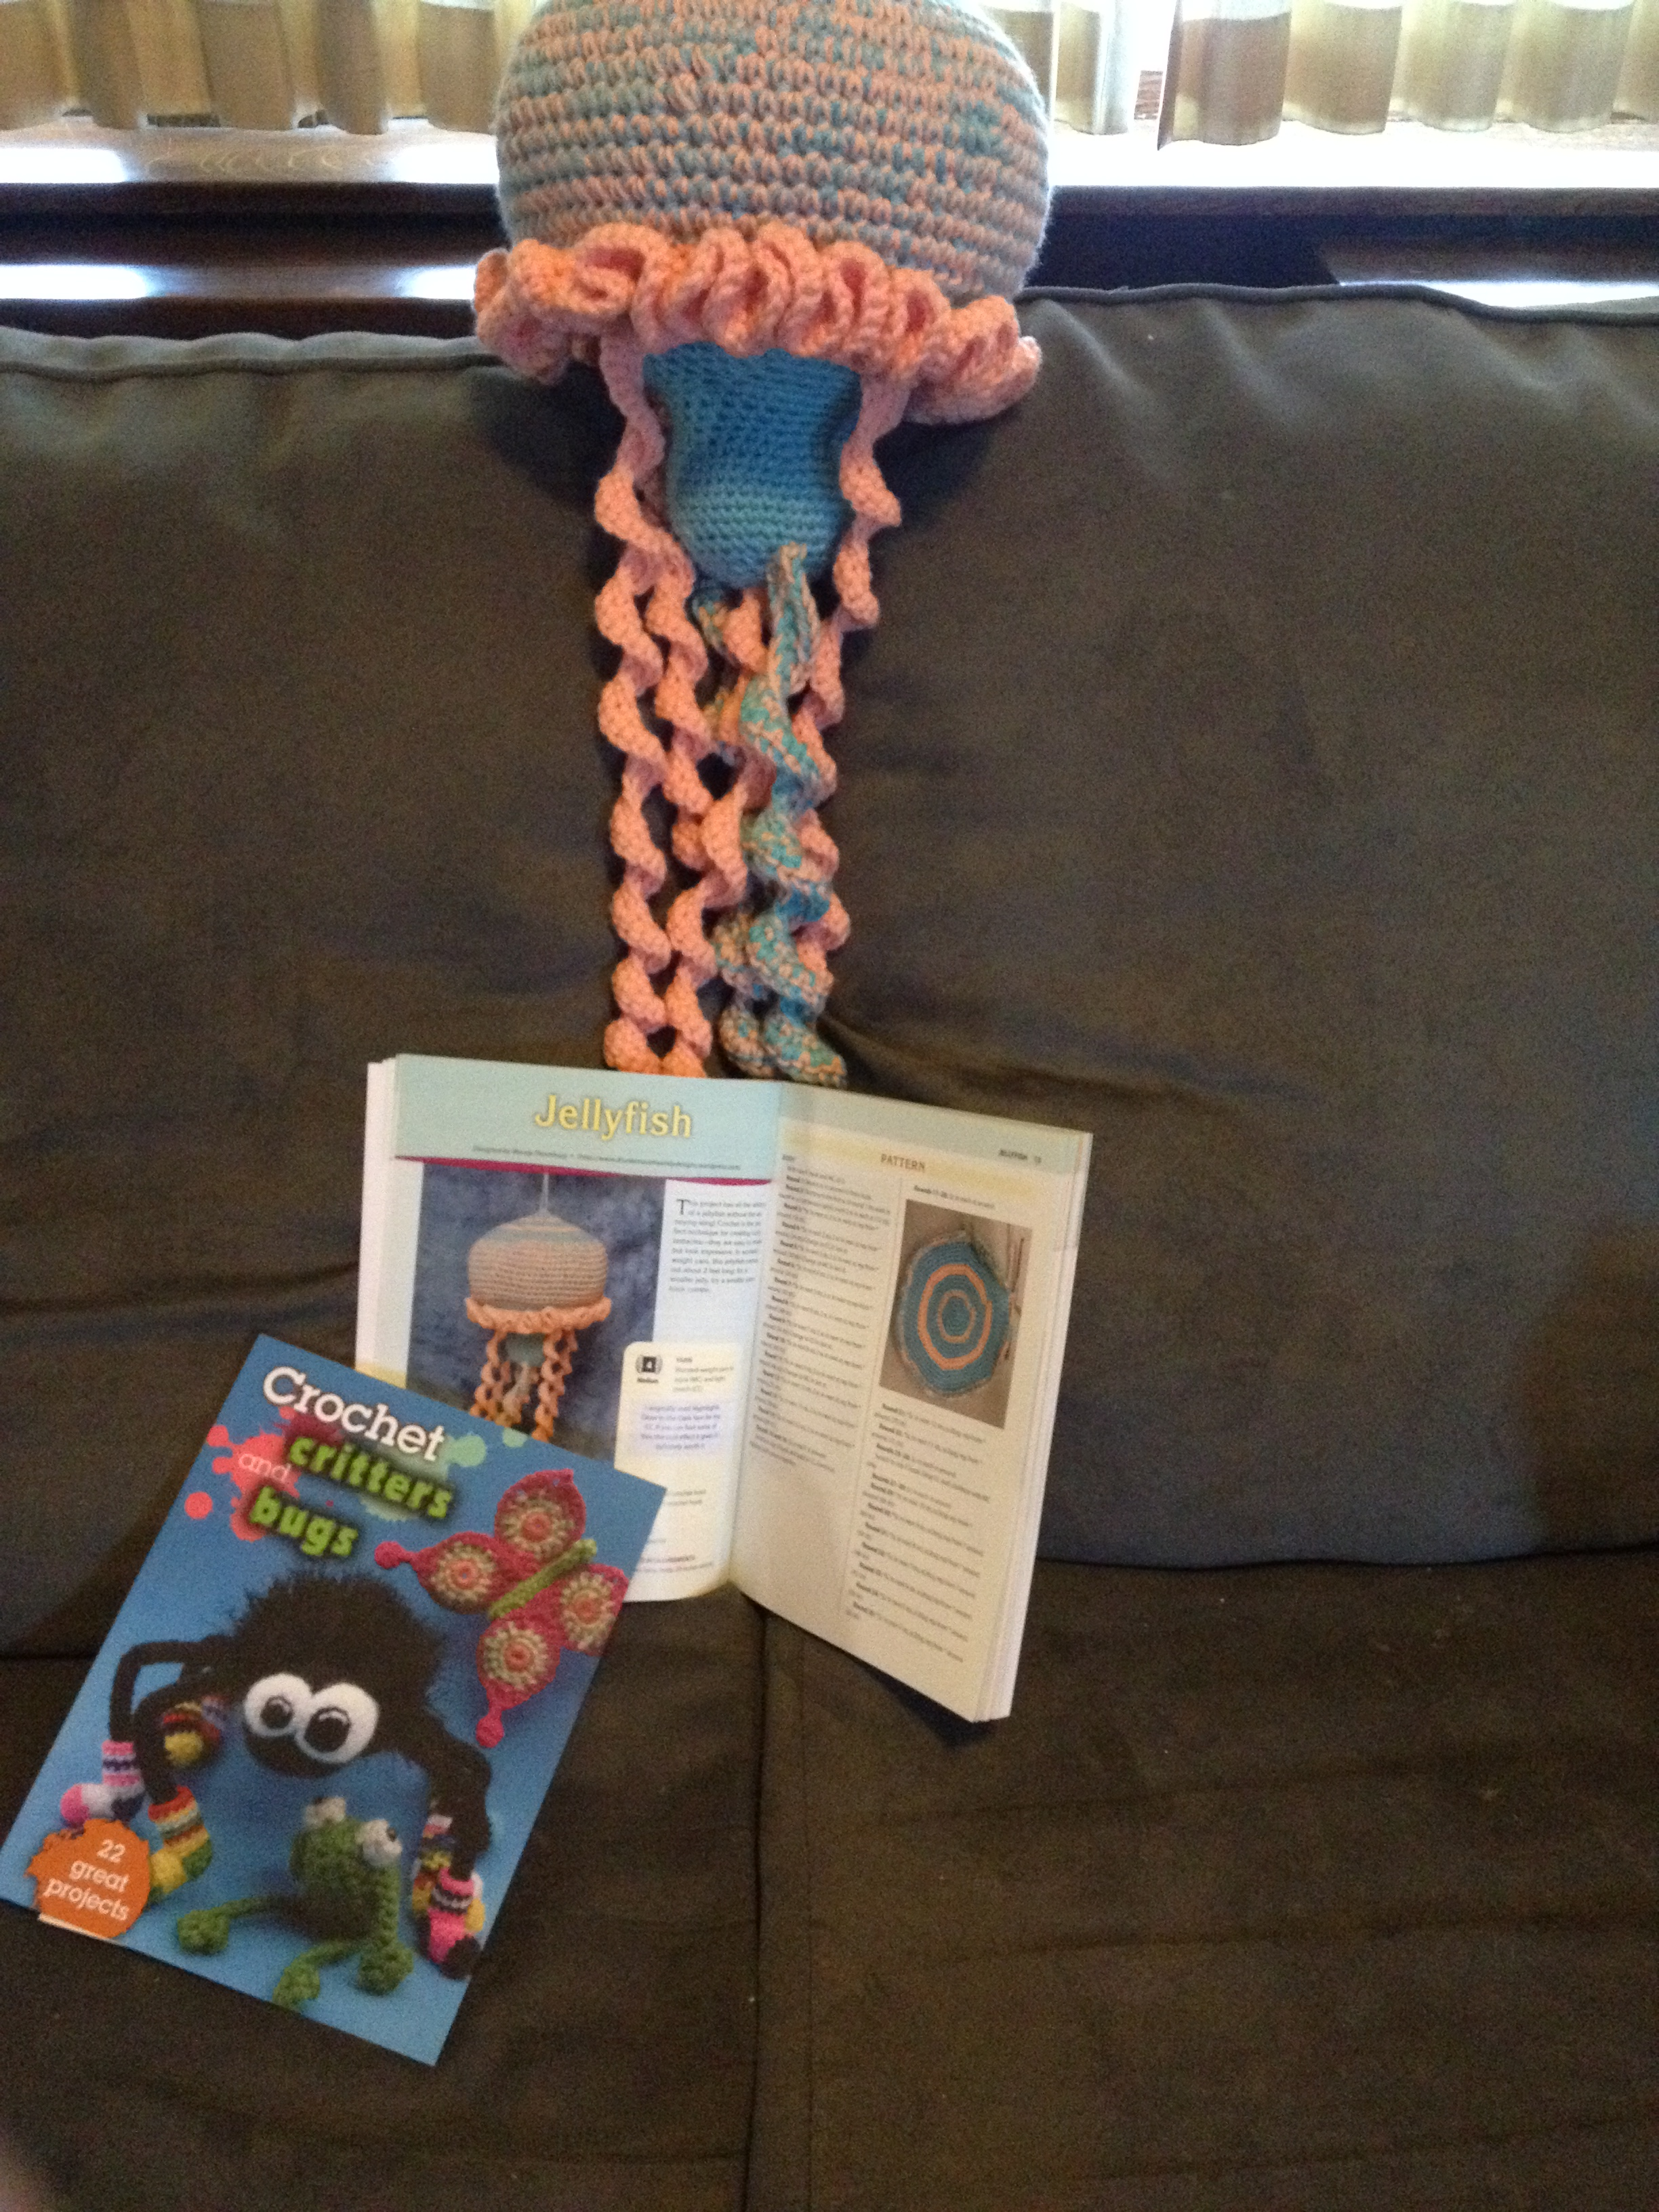 Crochet pattern book with jellyfish